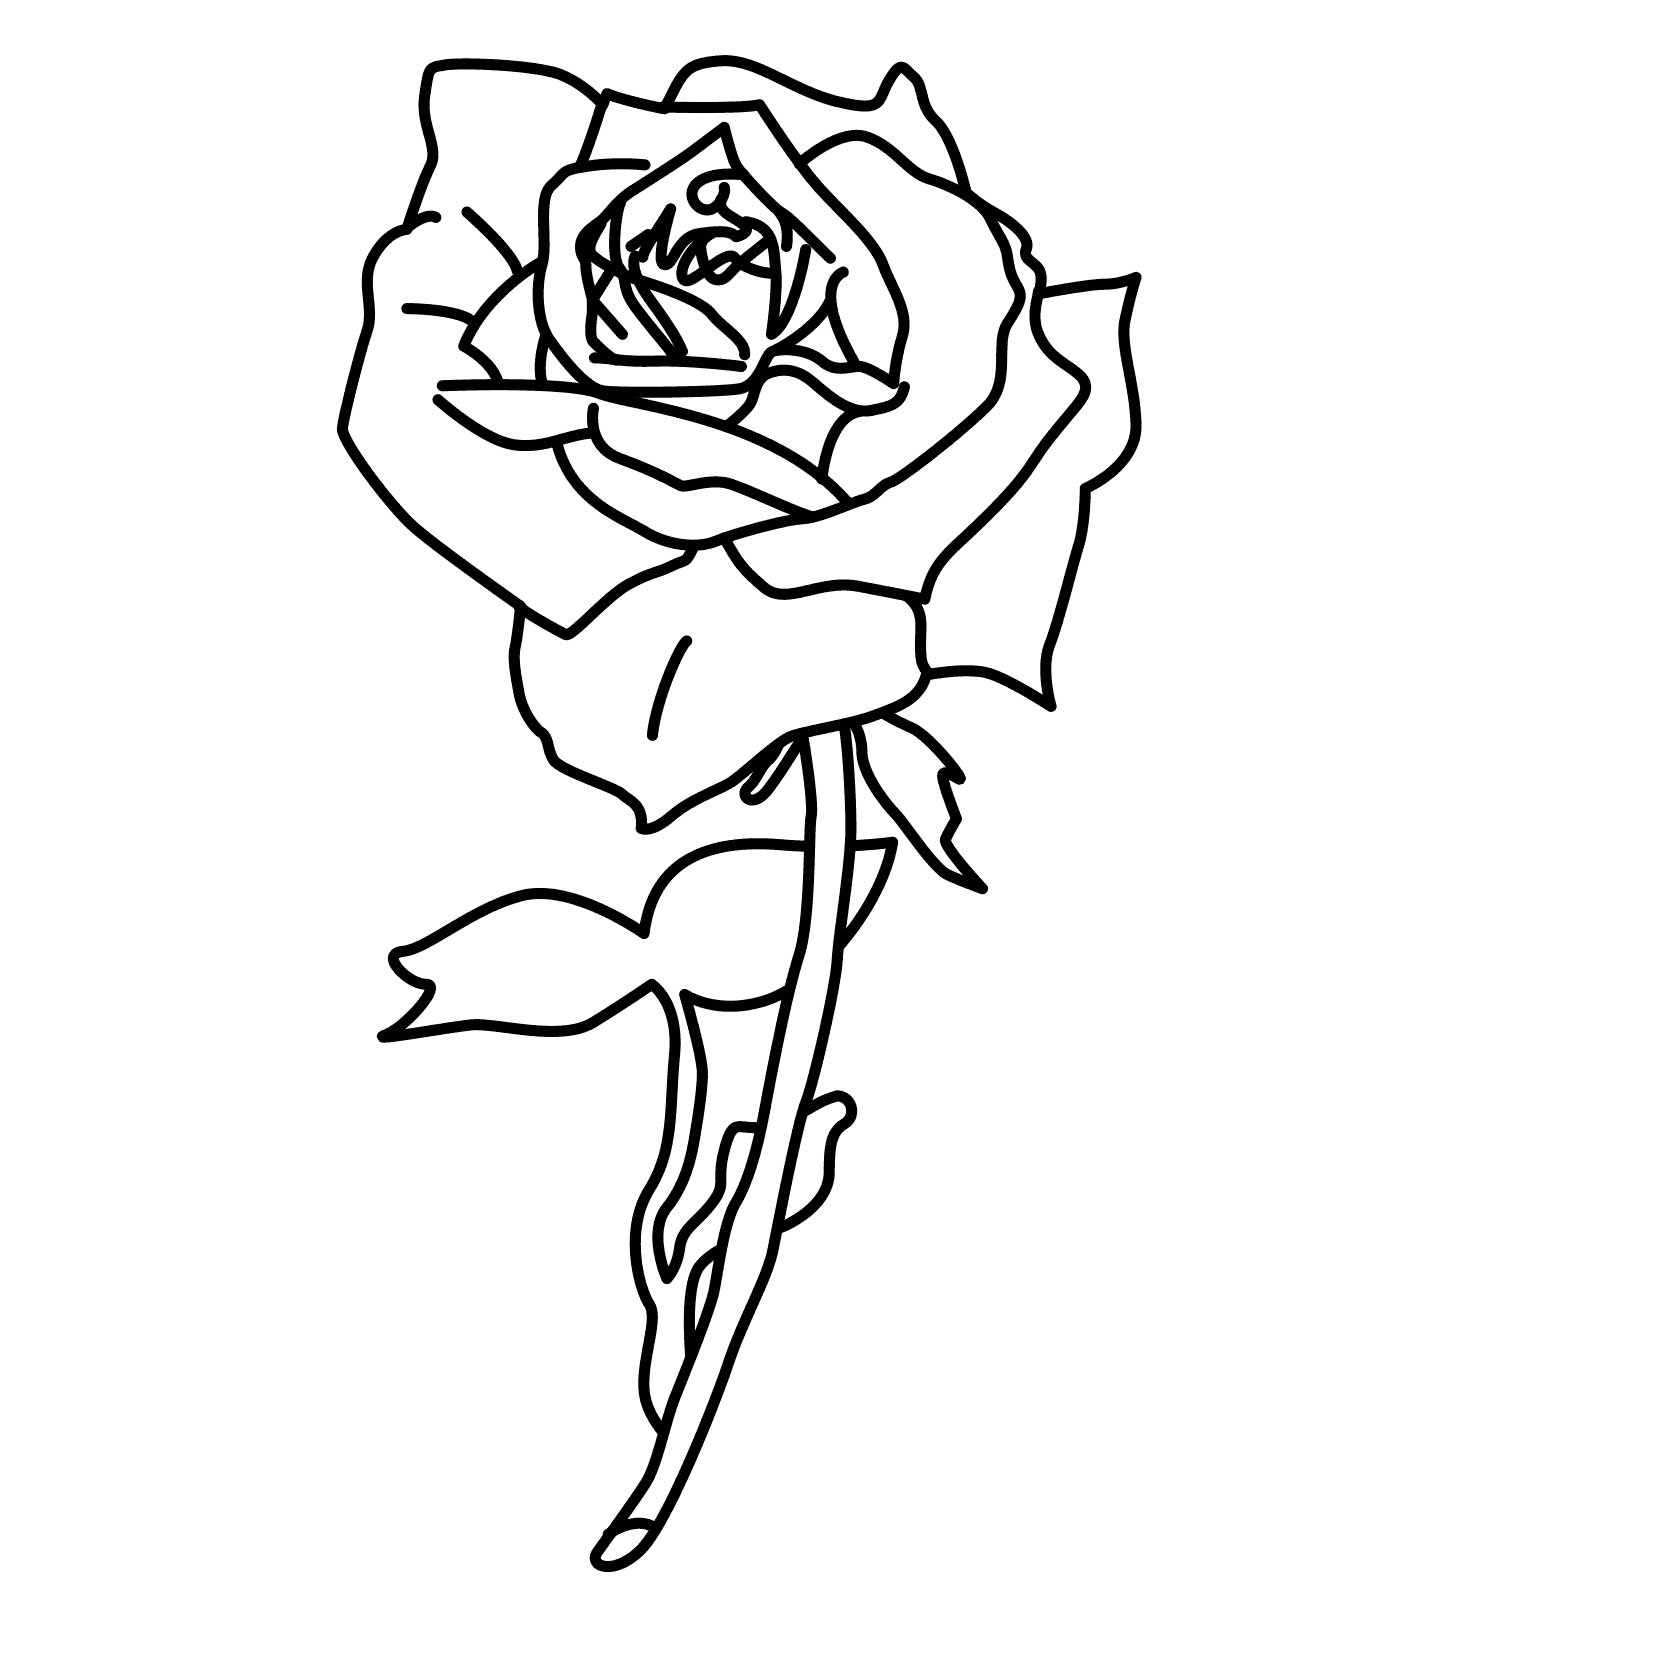 coloring book pages of roses - photo#28